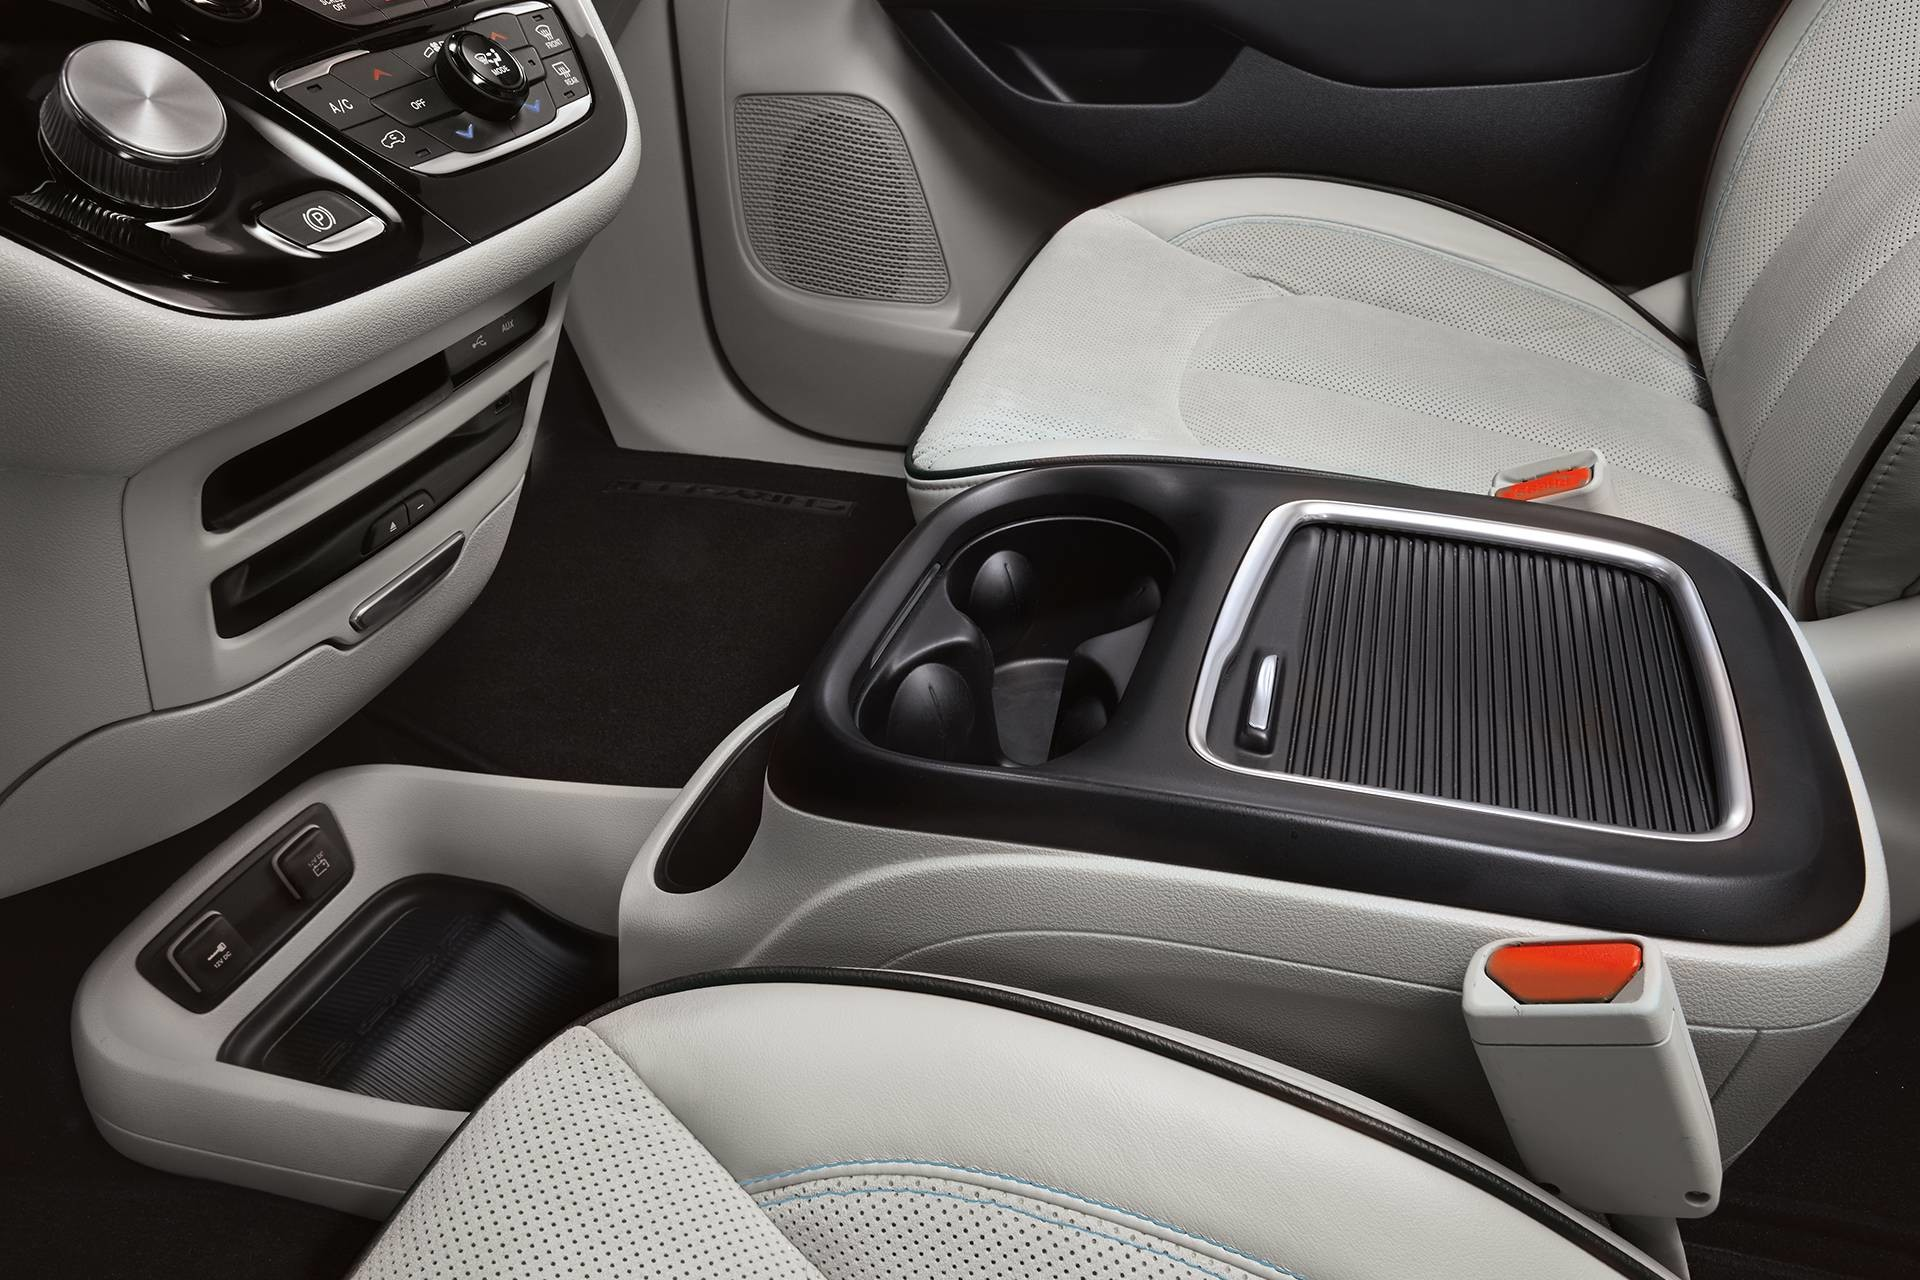 hight resolution of 2019 chrysler pacifica hybrid interior showing front console cup holders and usb ports